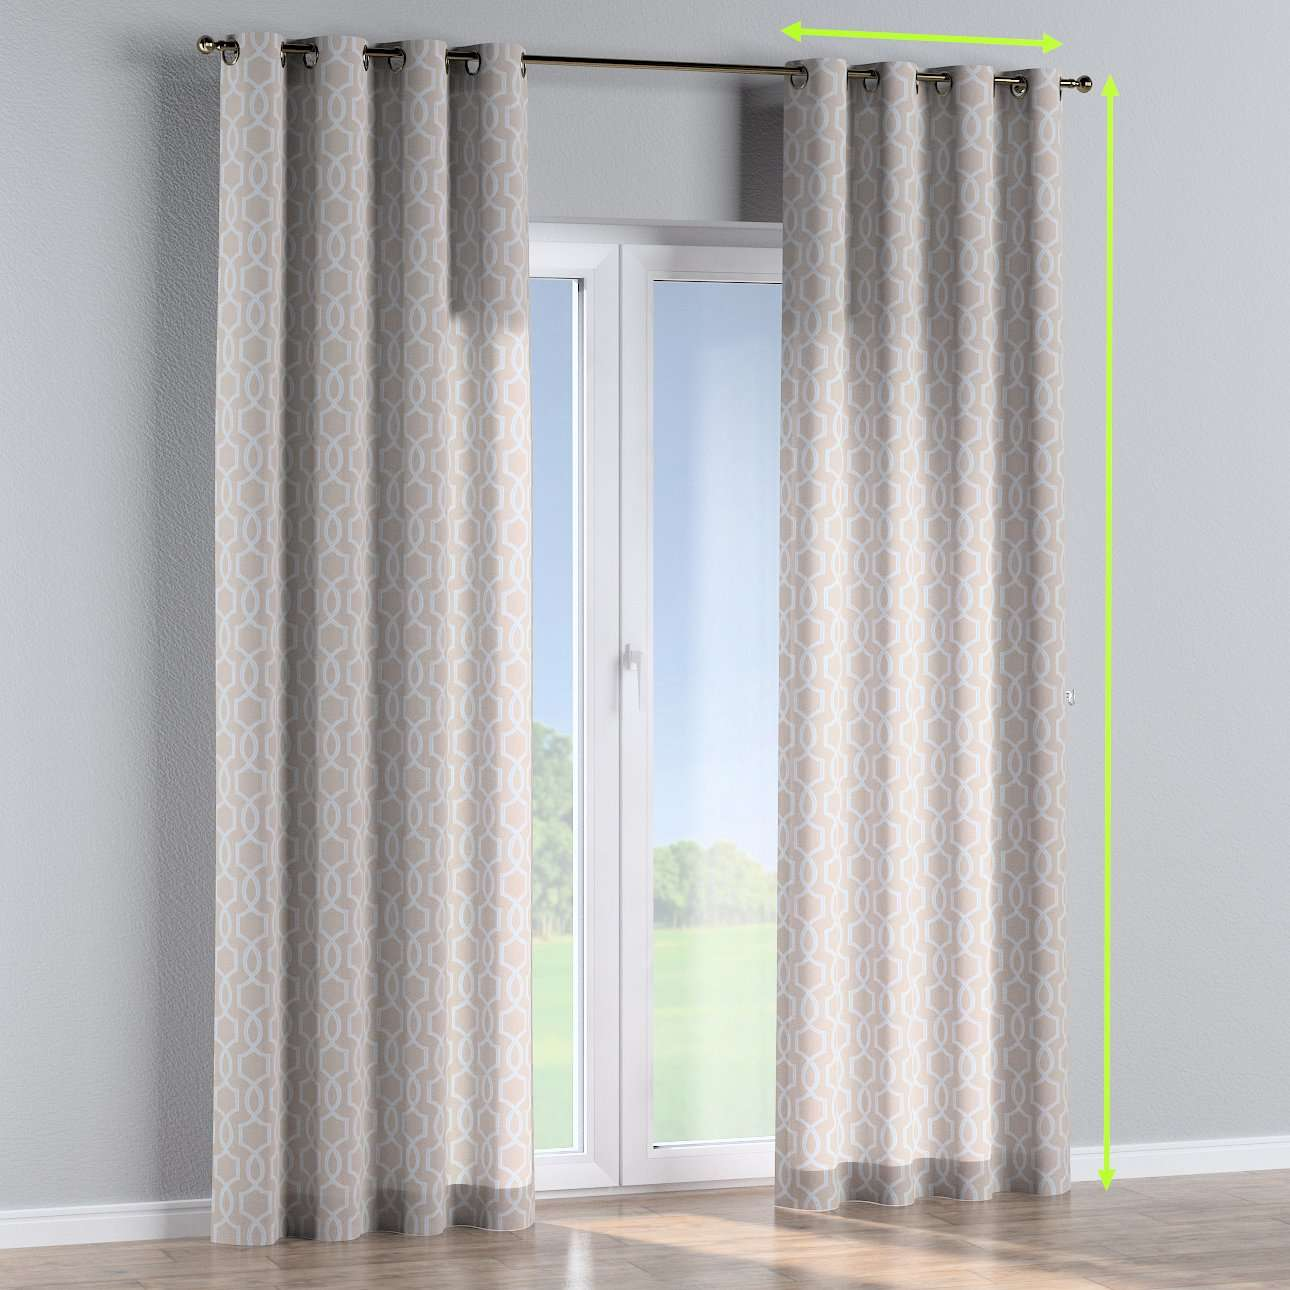 Eyelet curtains in collection Comic Book & Geo Prints, fabric: 141-26